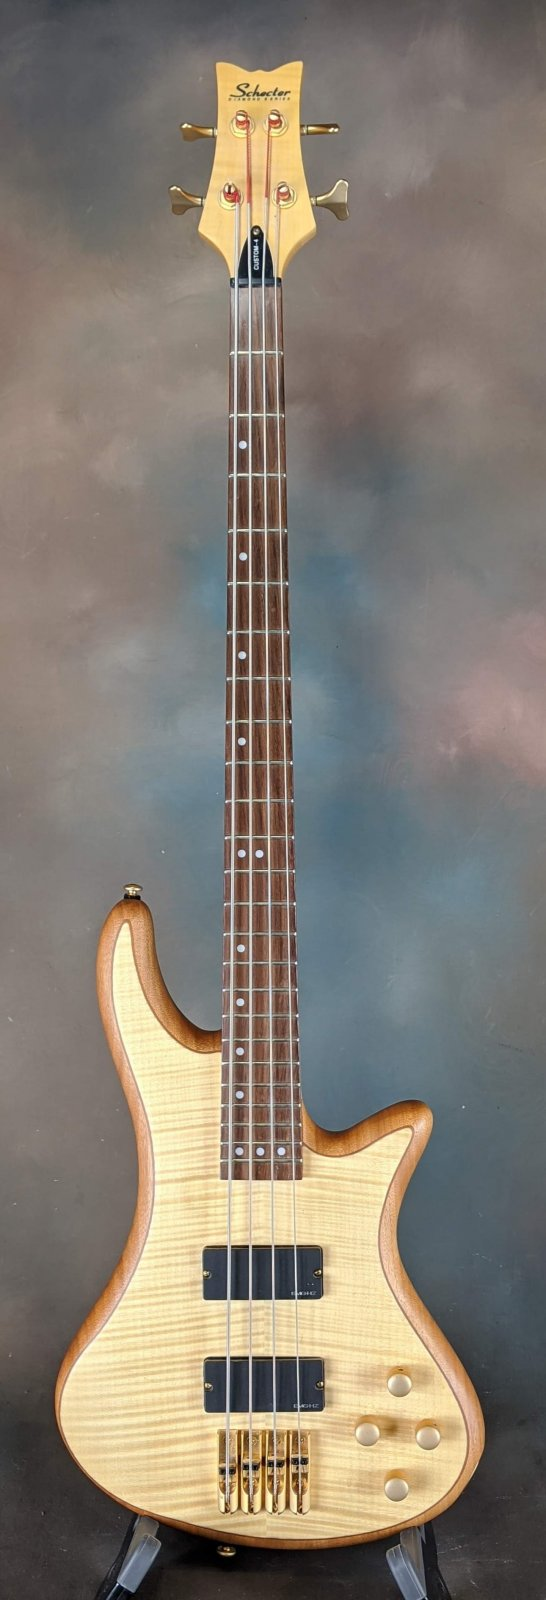 Used Schecter Custom 4 Electric Bass